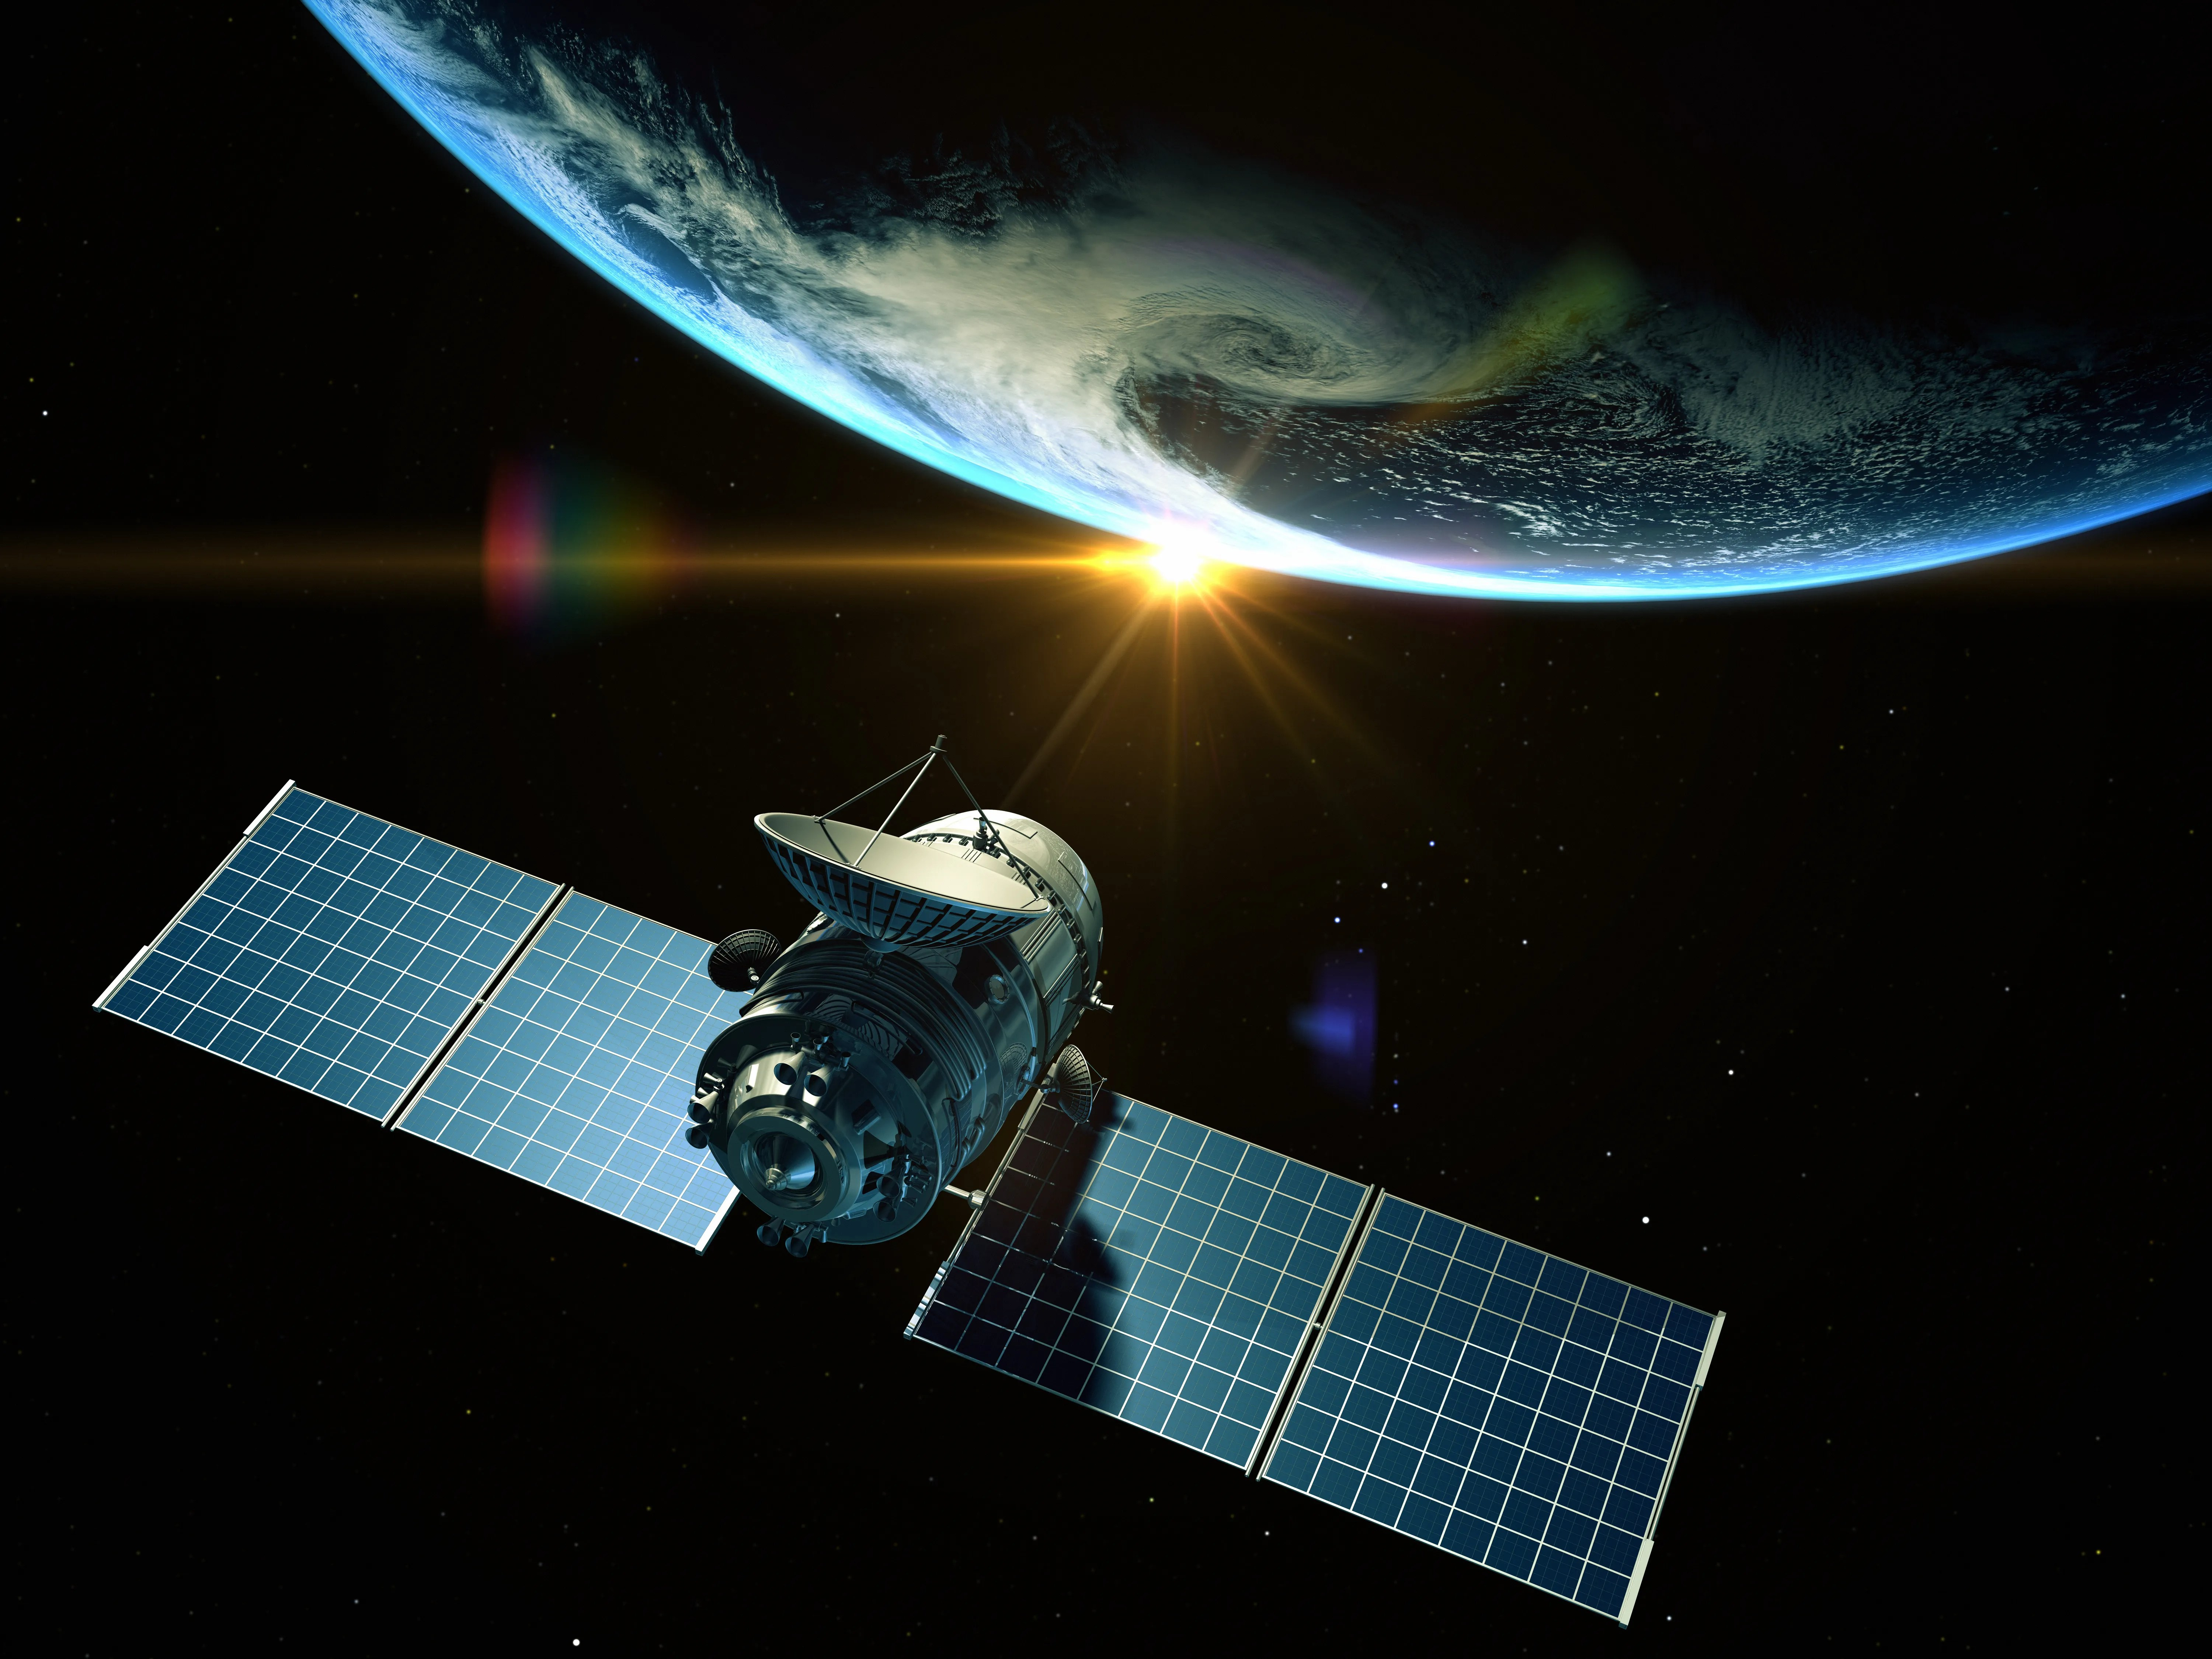 GPS satellite in space